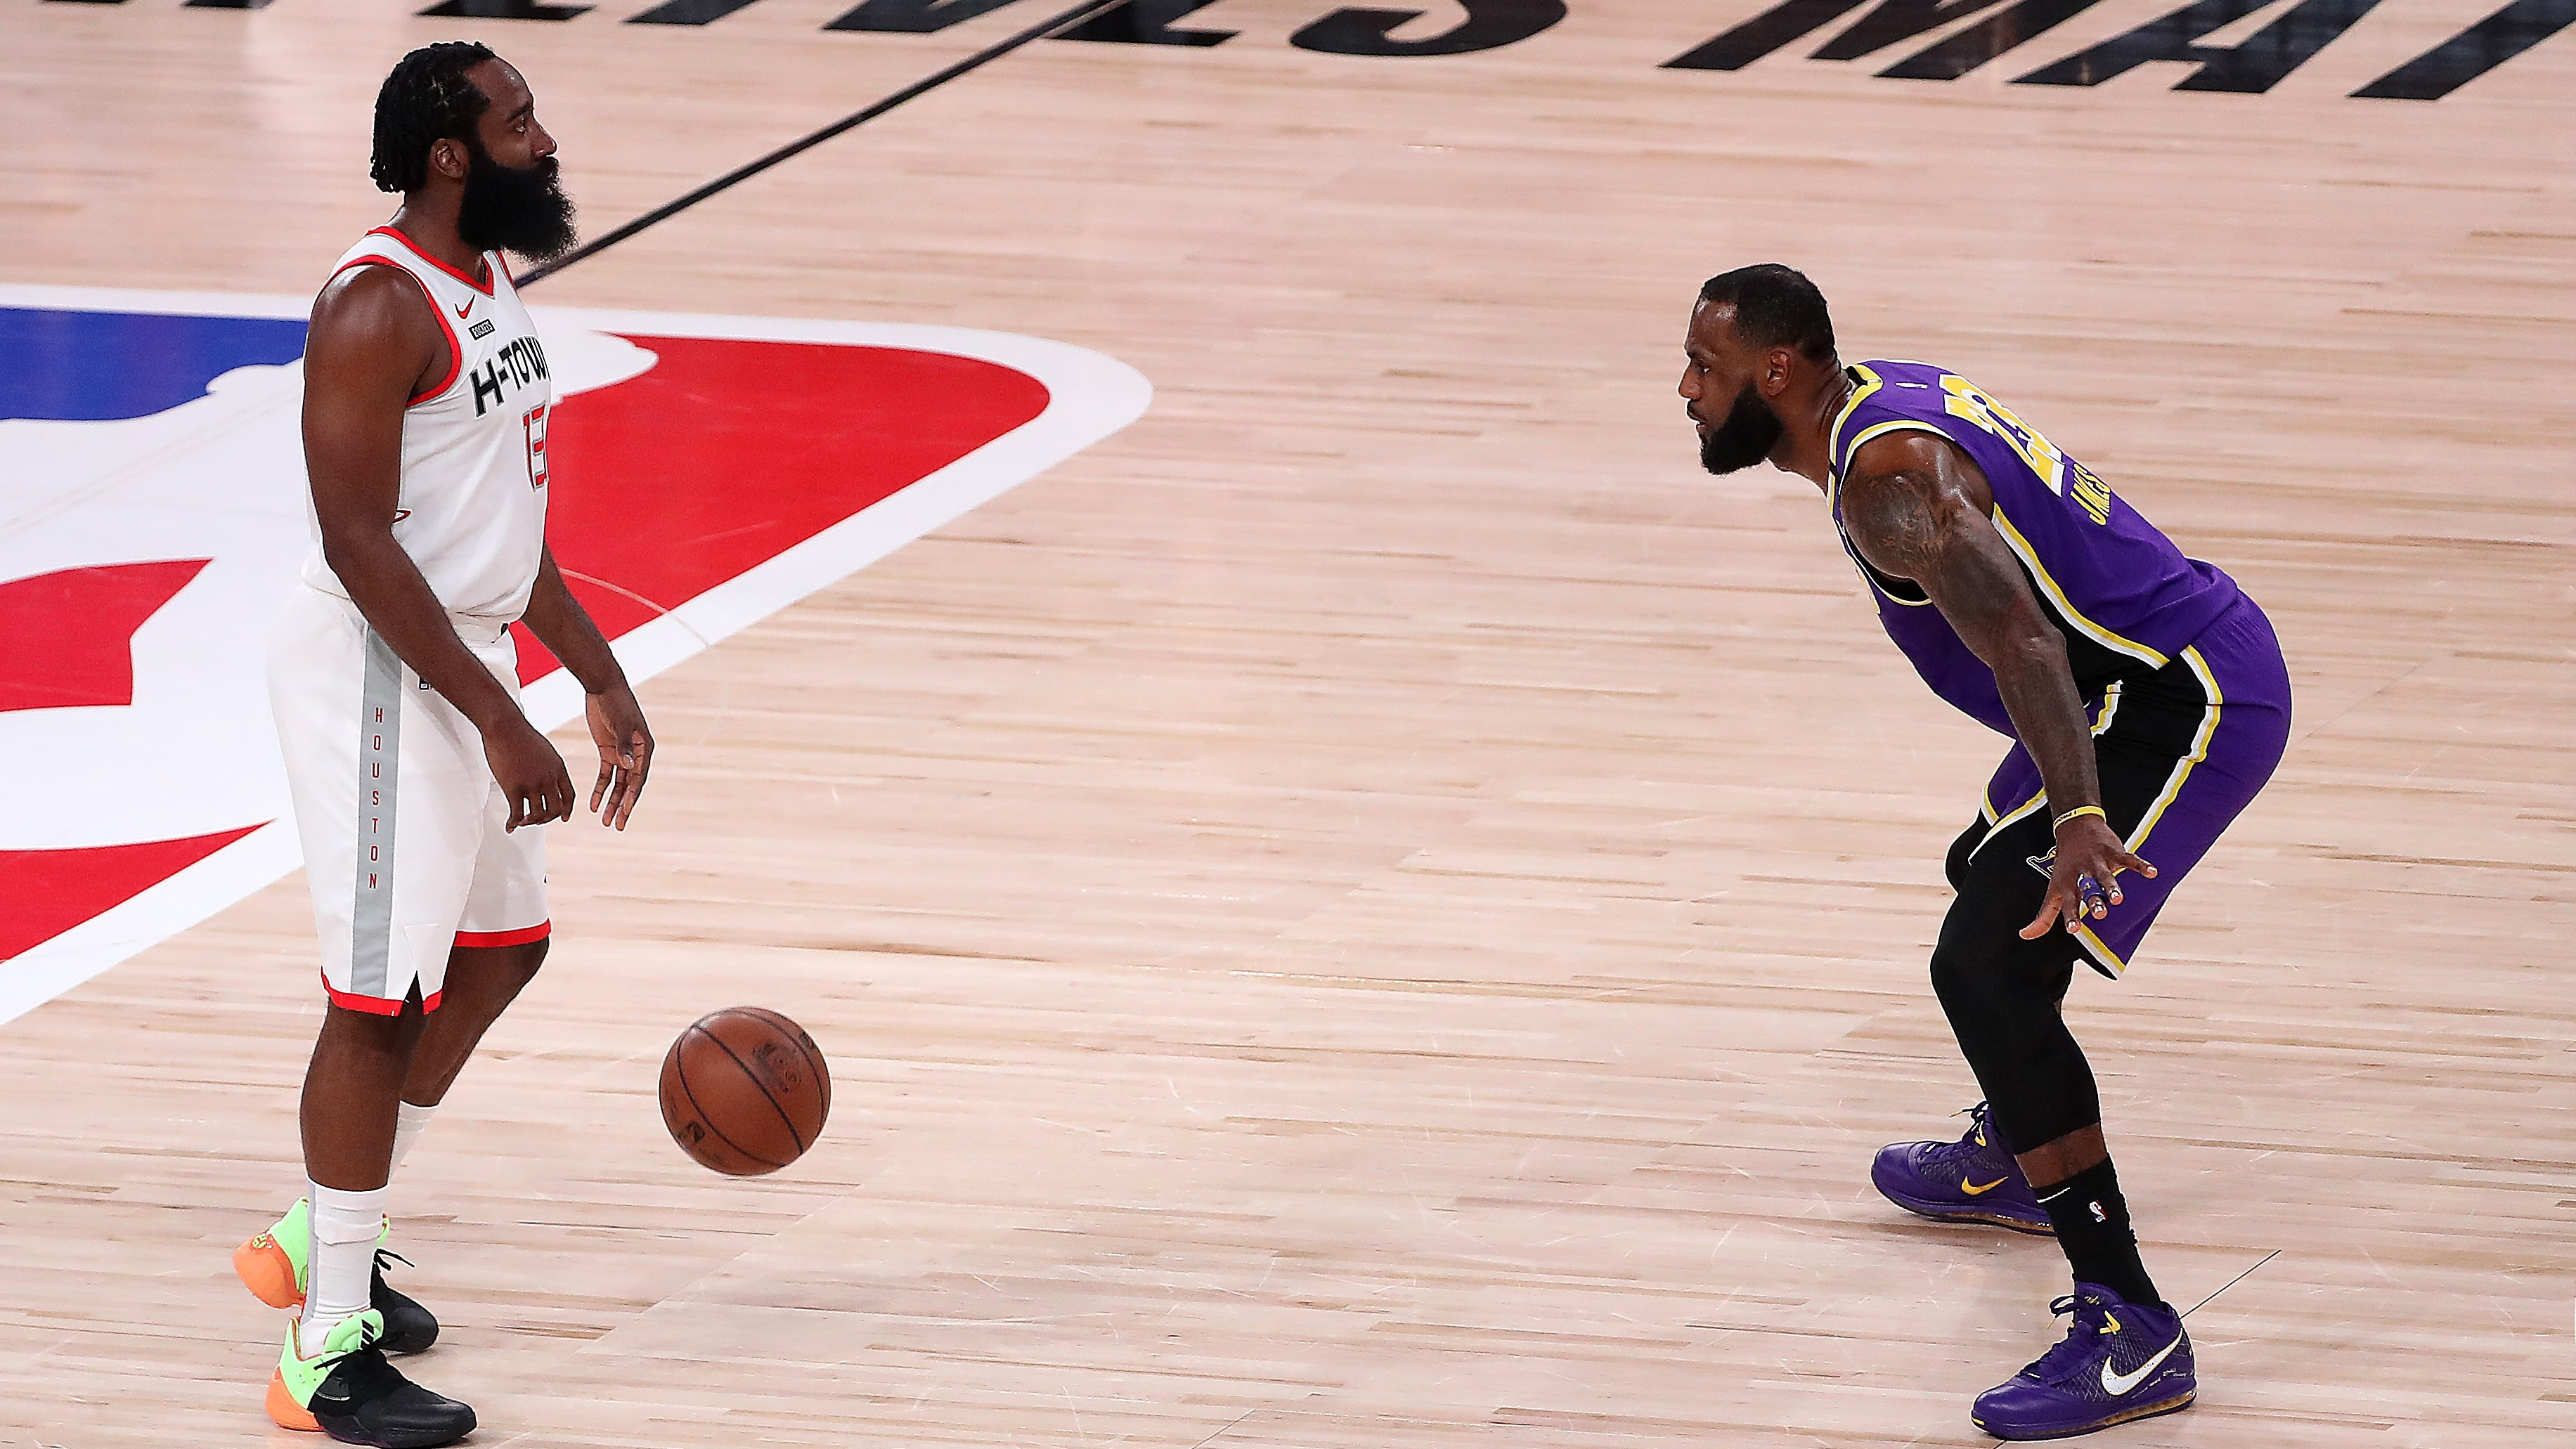 NBA highlights on Sep. 4: Better-prepared Rockets beat Lakers